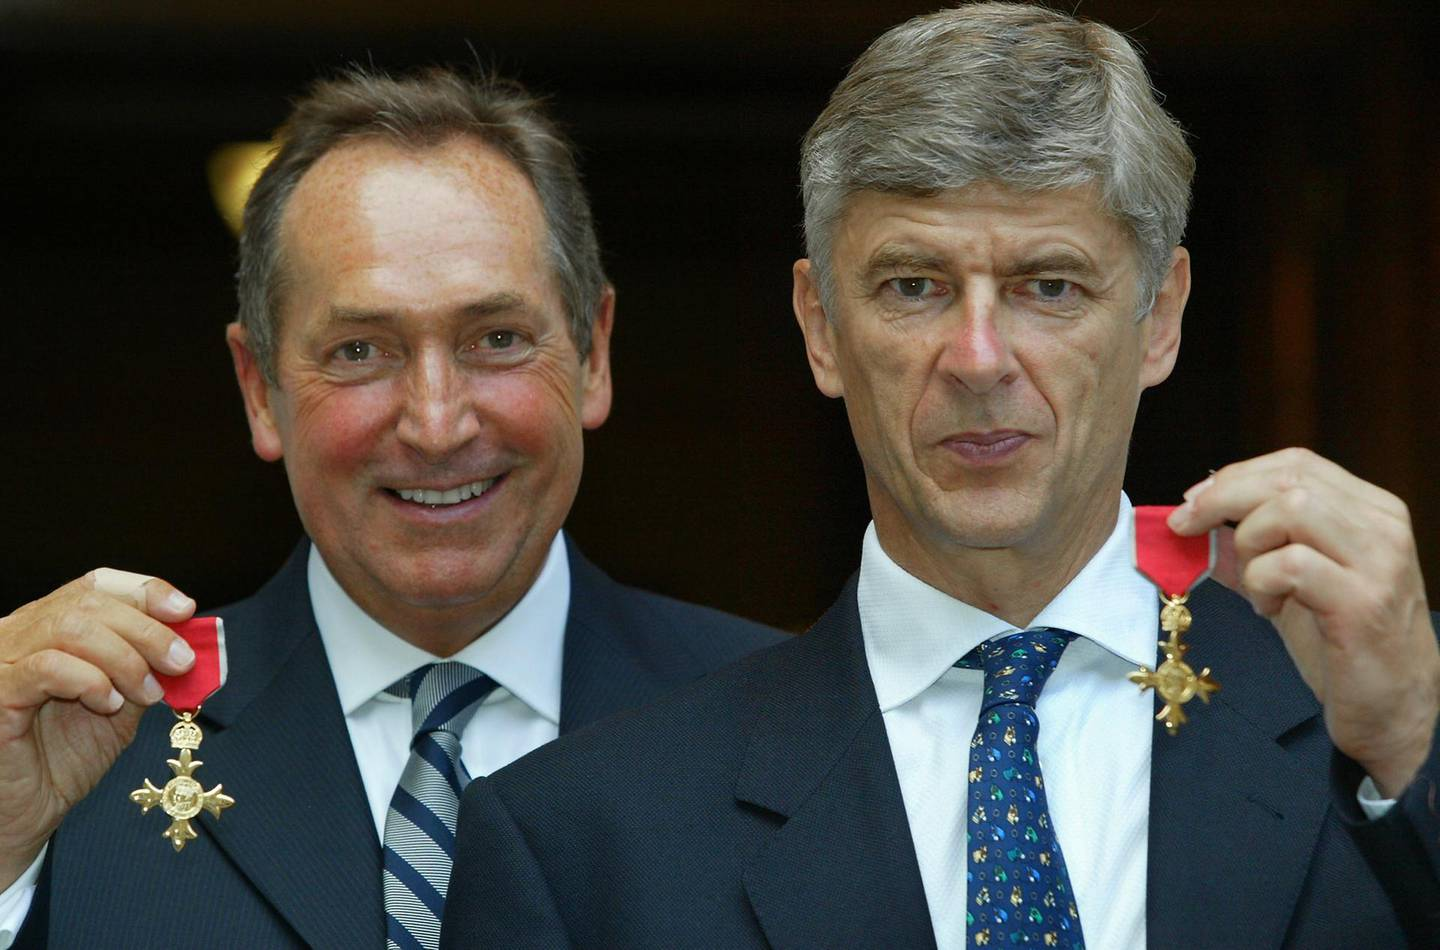 (FILES) In this file photo taken on July 9, 2003 Arsene Wenger (R) of Arsenal, and Gerard Houllier of Liverpool pose with their OBE medals at The Foreign Office in London.  Ex-Liverpool manager Gerard Houllier has died at the age of 73, it was announced on December 14, 2020.  / AFP / POOL / Adrian DENNIS